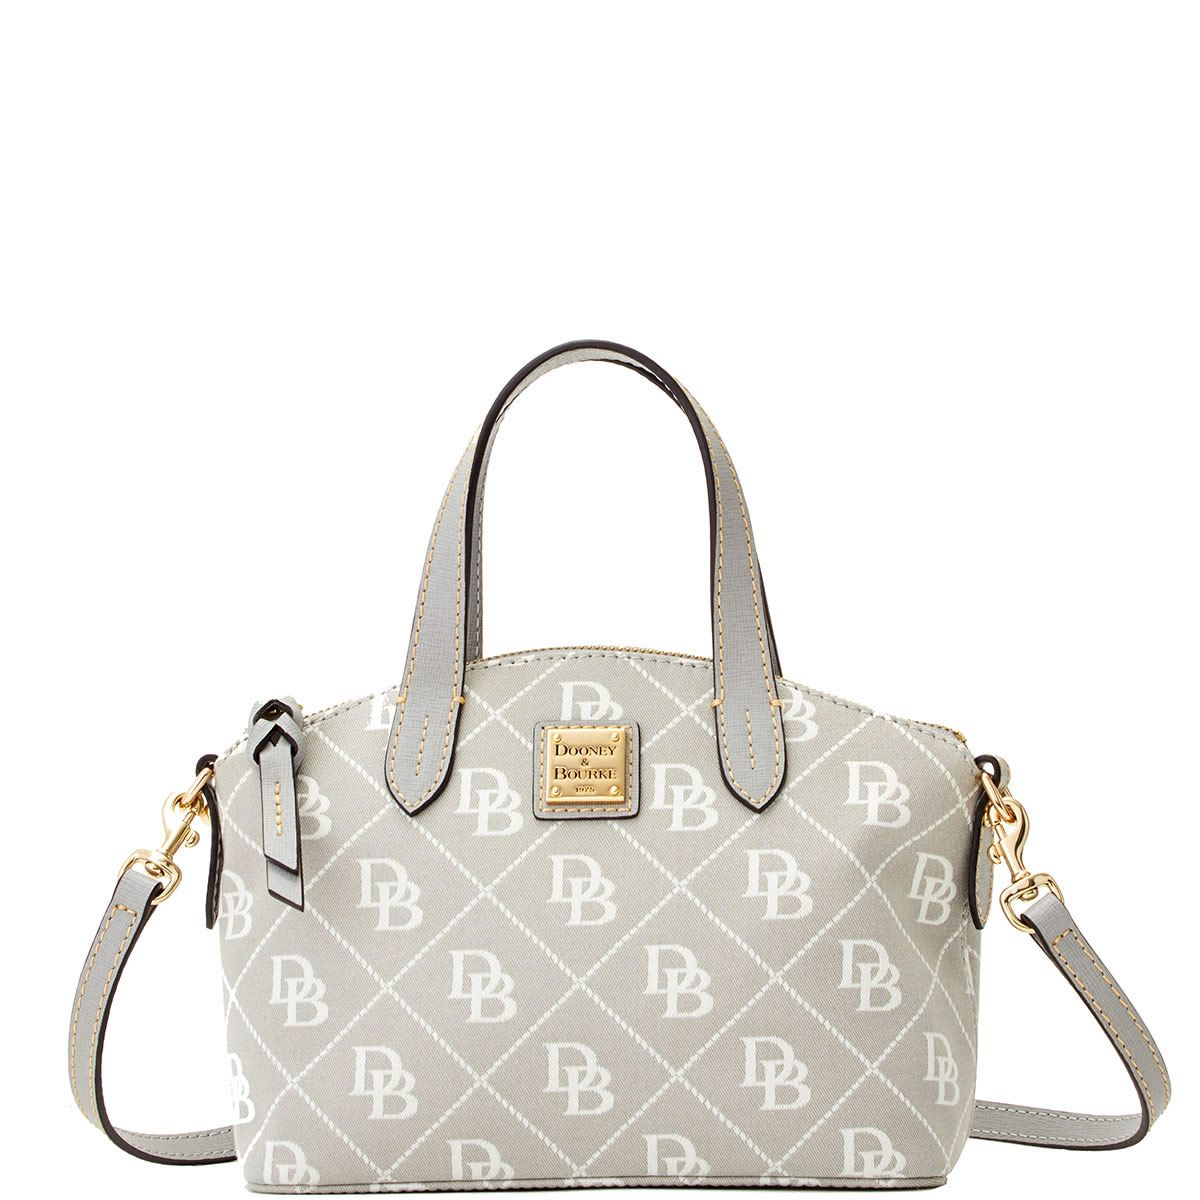 bde6635e6c7b Dooney & Bourke Satchels For Women - Macy's